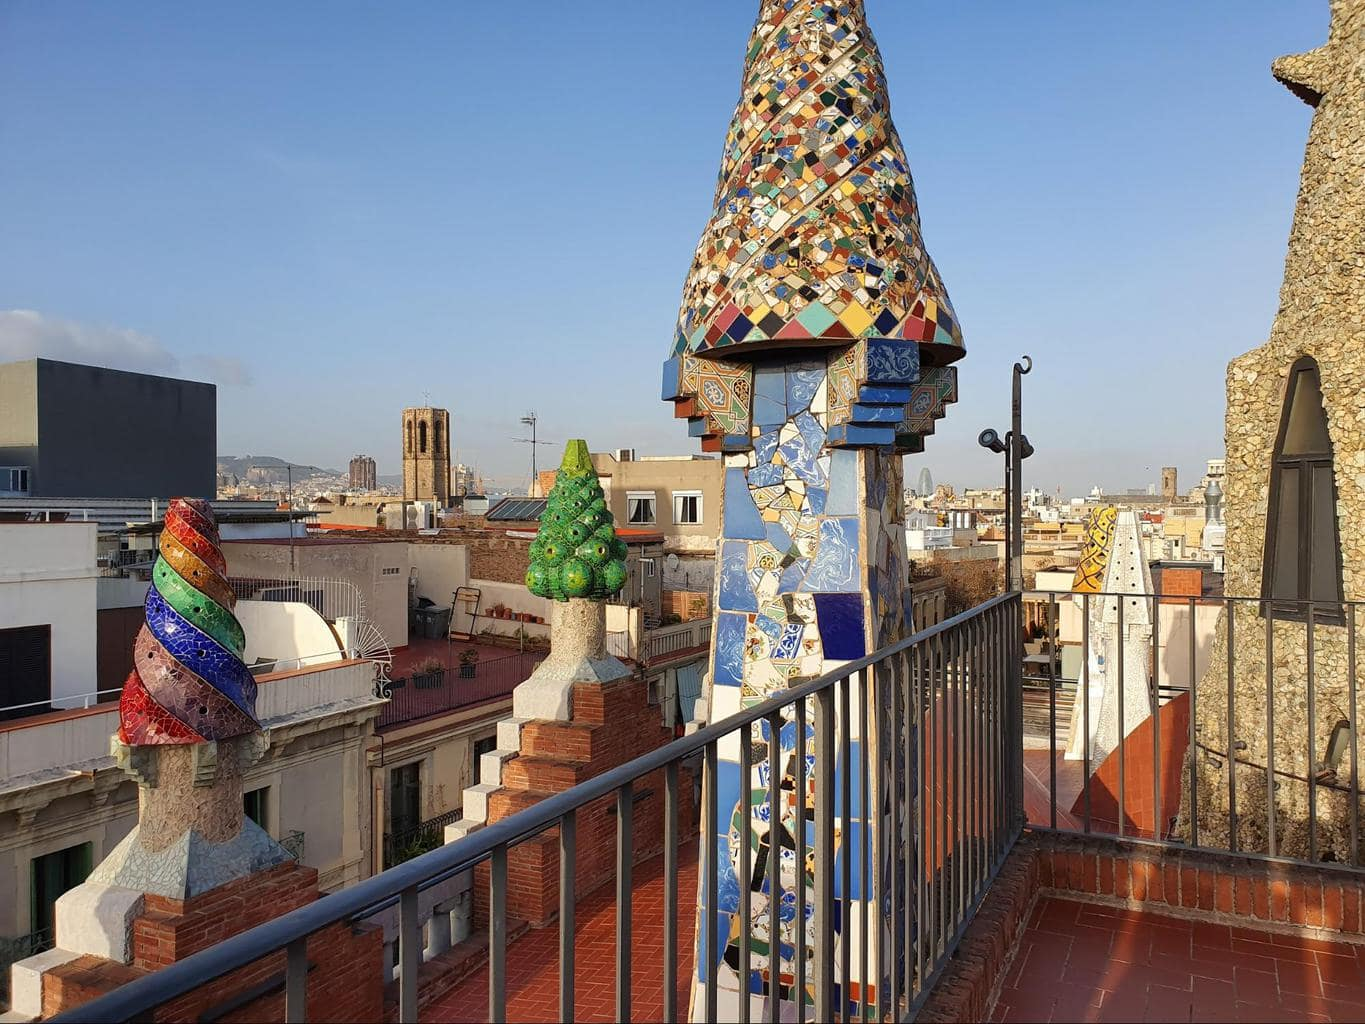 The rooftop of Palau Guell